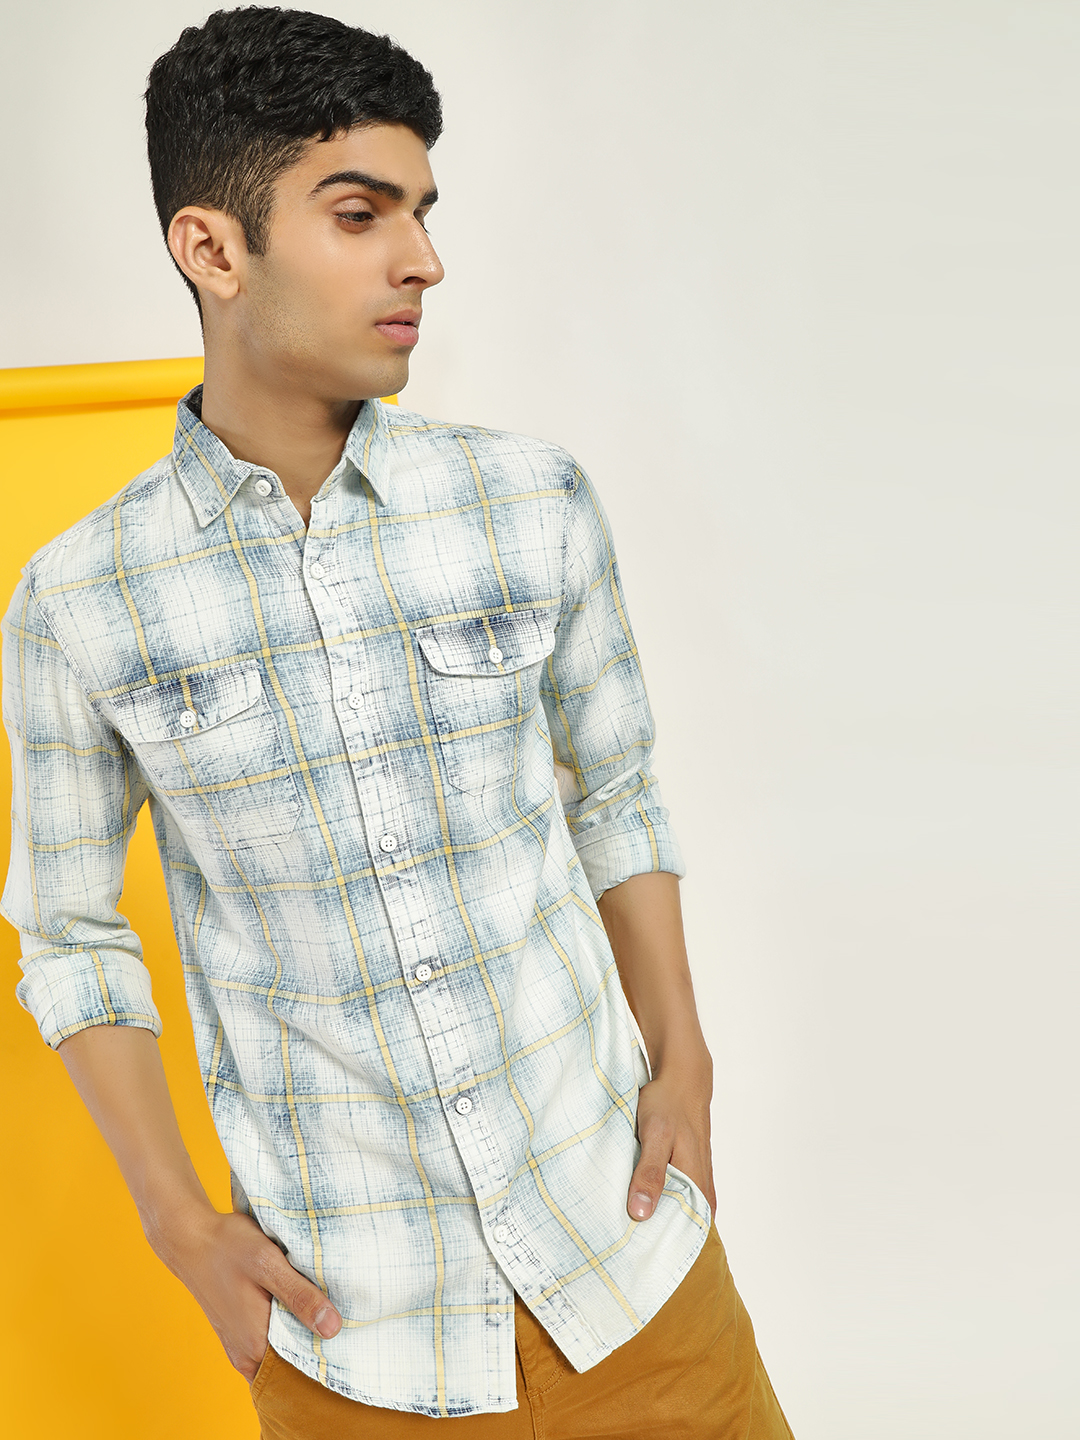 Disrupt White Washed Check Print Casual Shirt 1